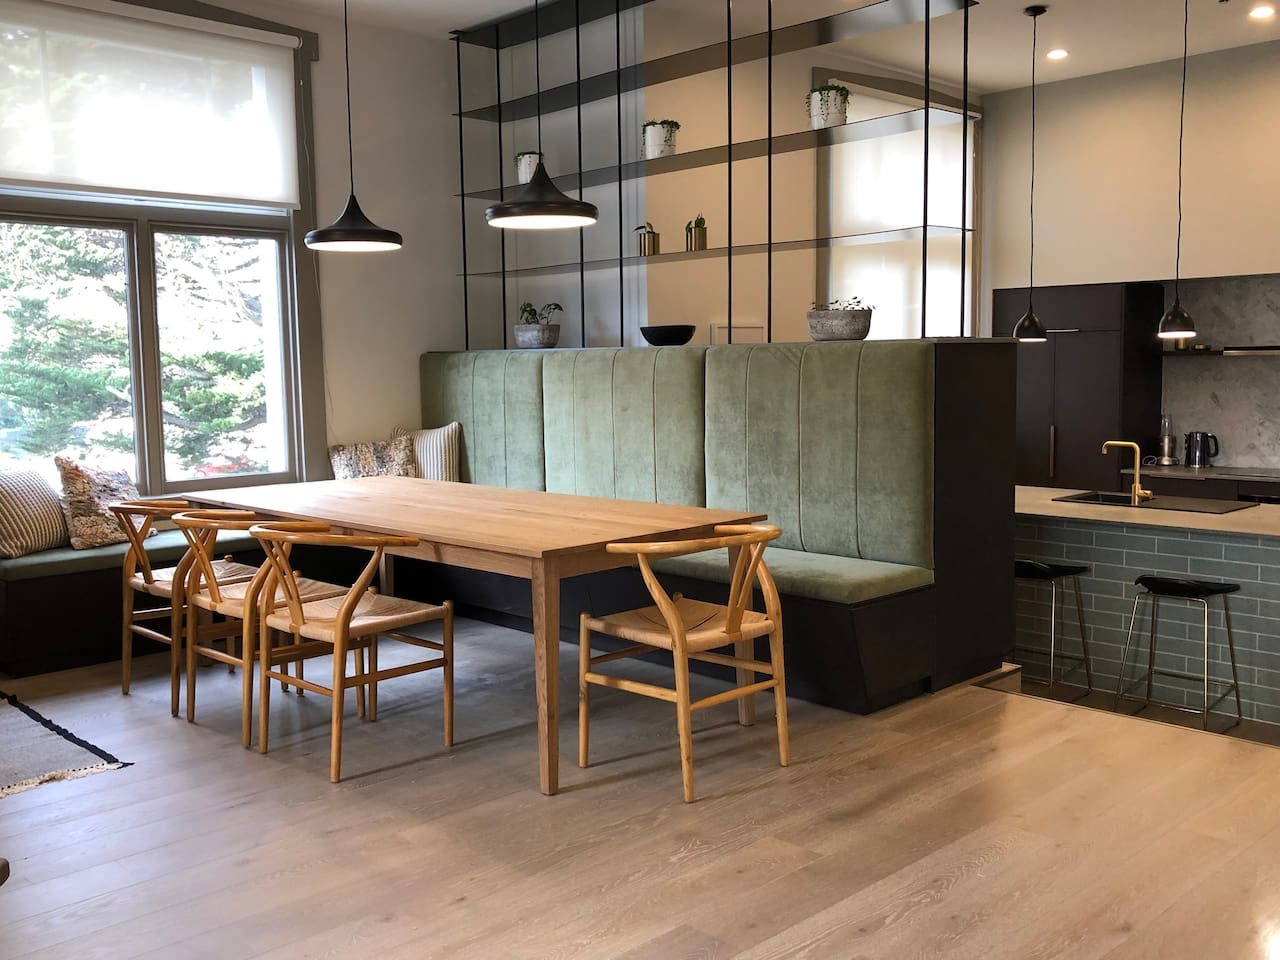 A large oak dining or meeting table comfortably seats 12. Numerous eateries and catering options are available nearby. Jizo and Shinjuku Japanese cafés across the road are favourites among Dunedin locals. Countdown supermarket is in walking distance.